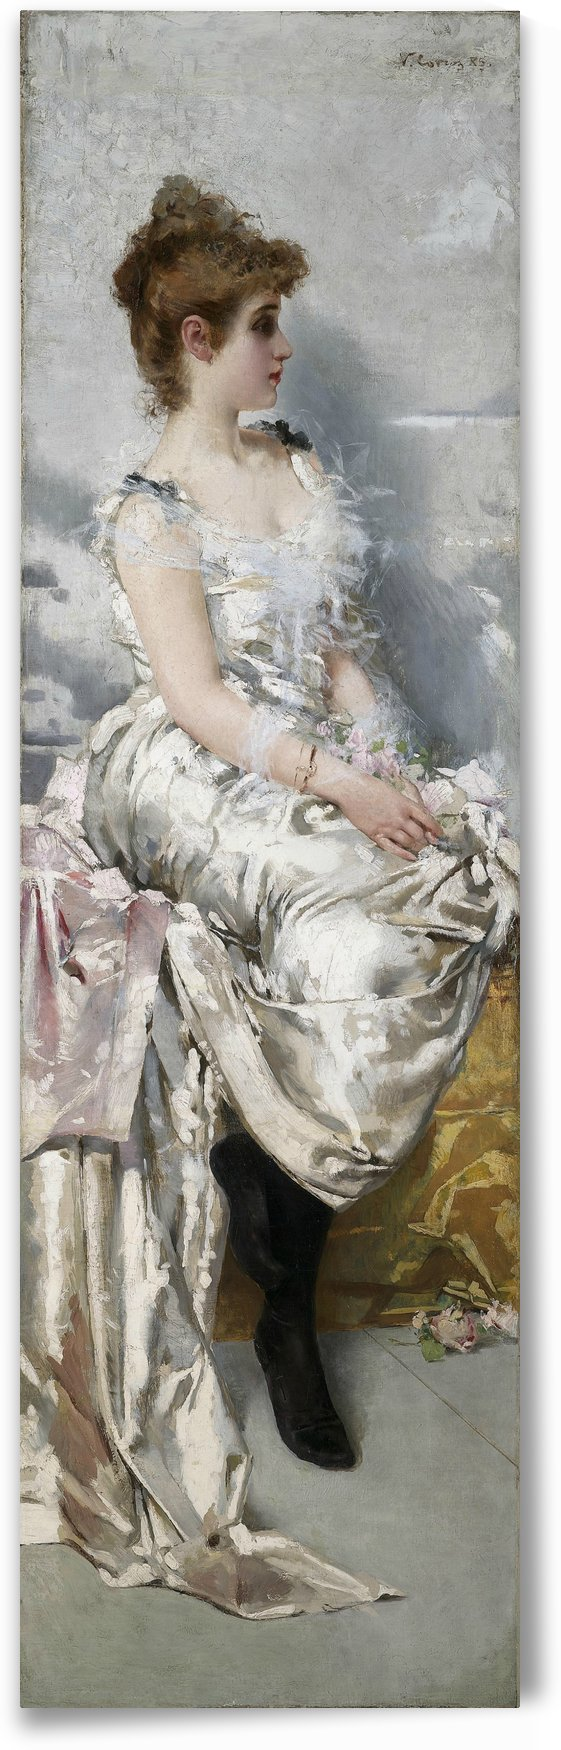 Portrait of young woman in white dress with flowers by Vittorio Matteo Corcos